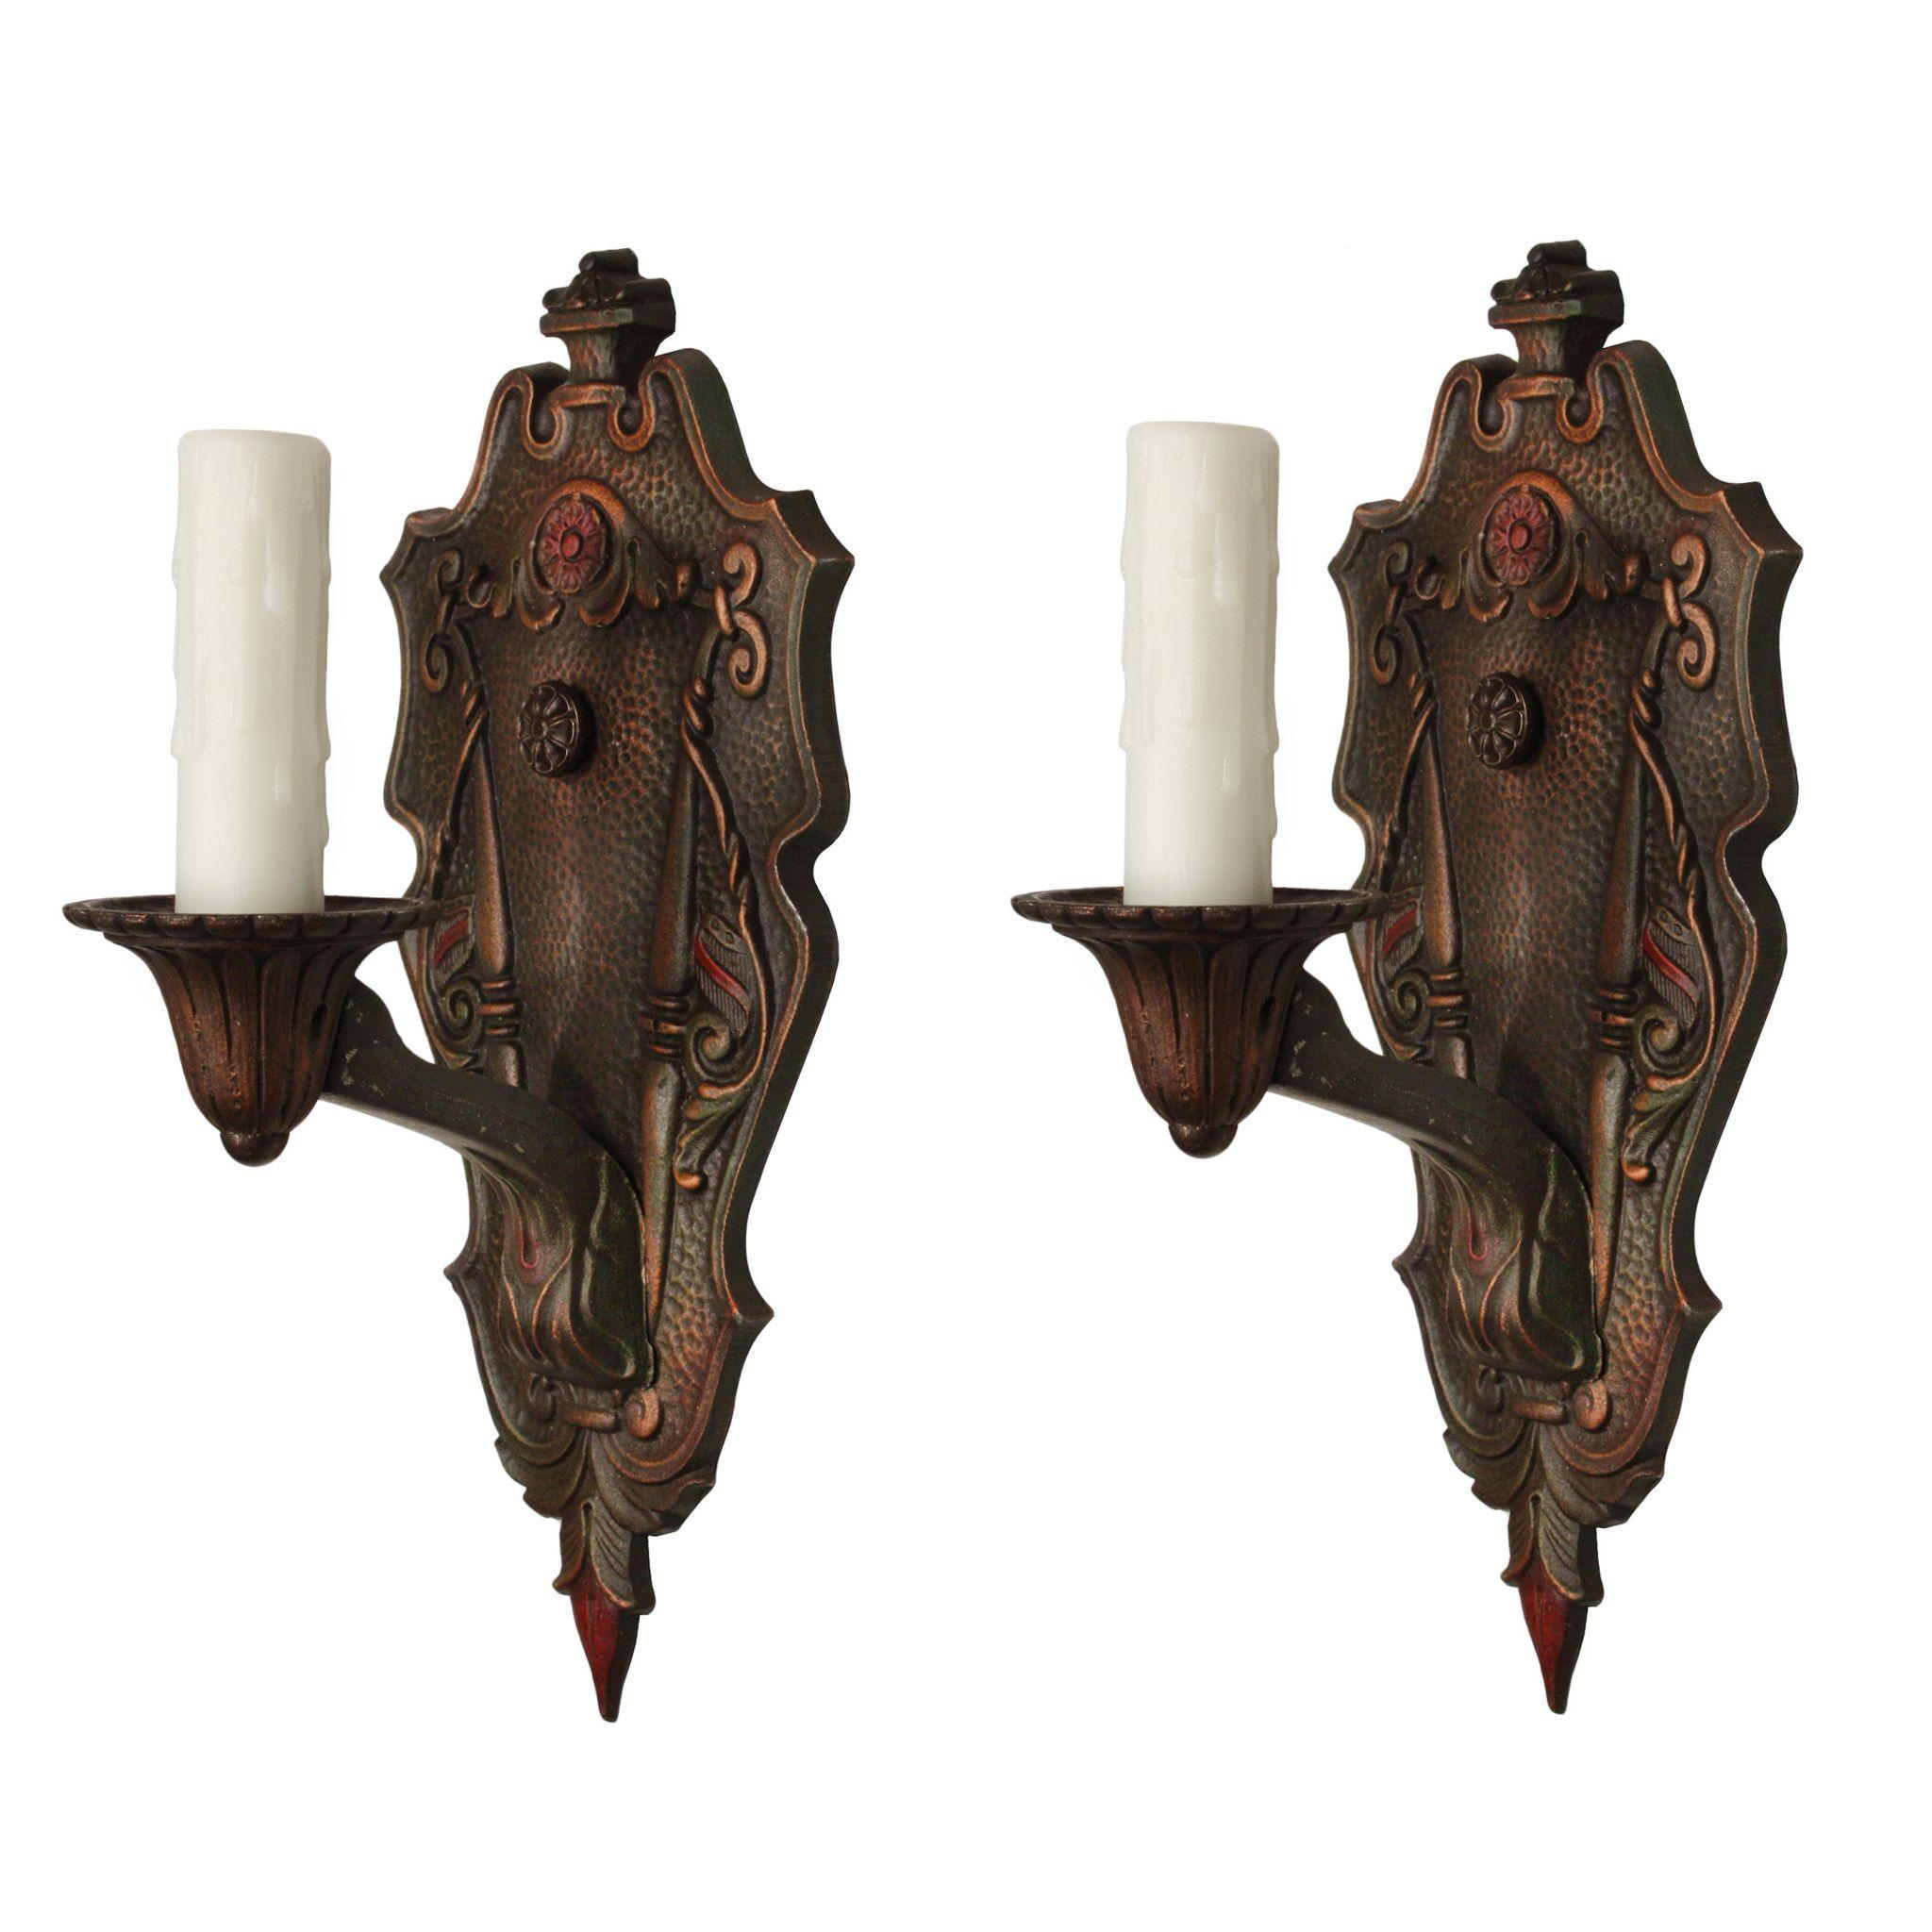 Pair of Antique Spanish Revival Sconces, Original Polychrome Finish